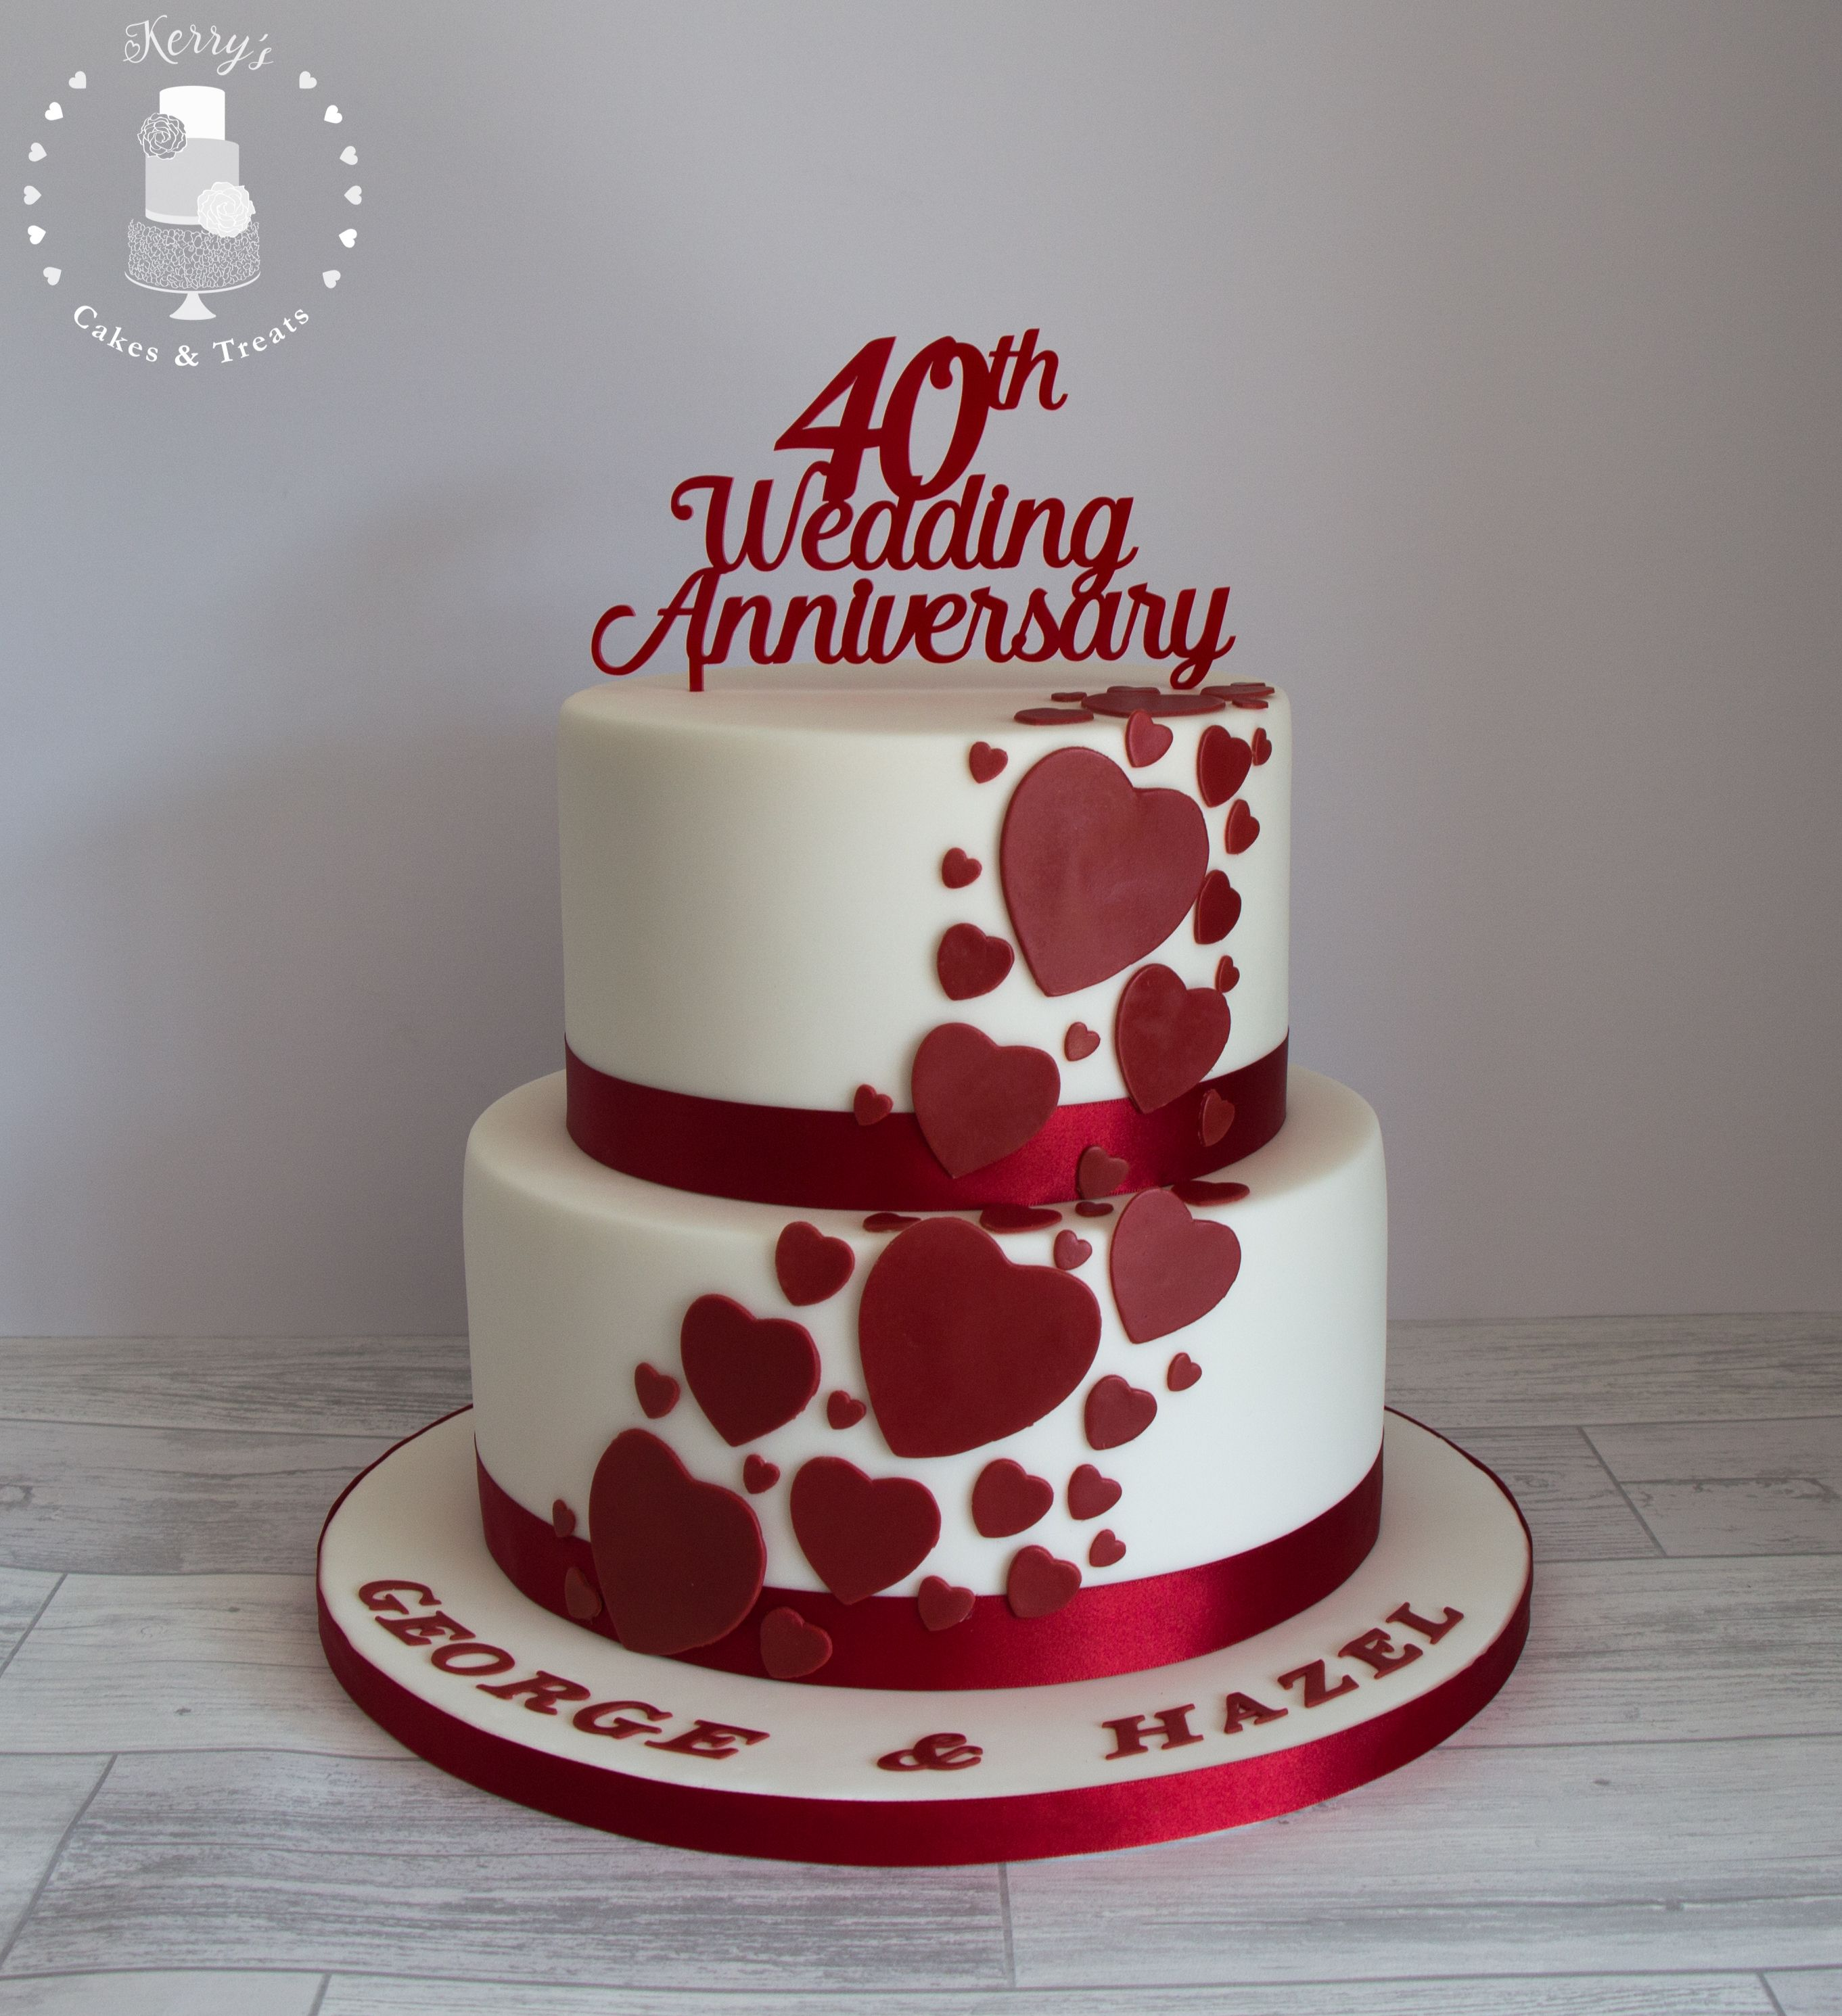 40th Ruby Wedding Anniversary Cake White With Ruby Red